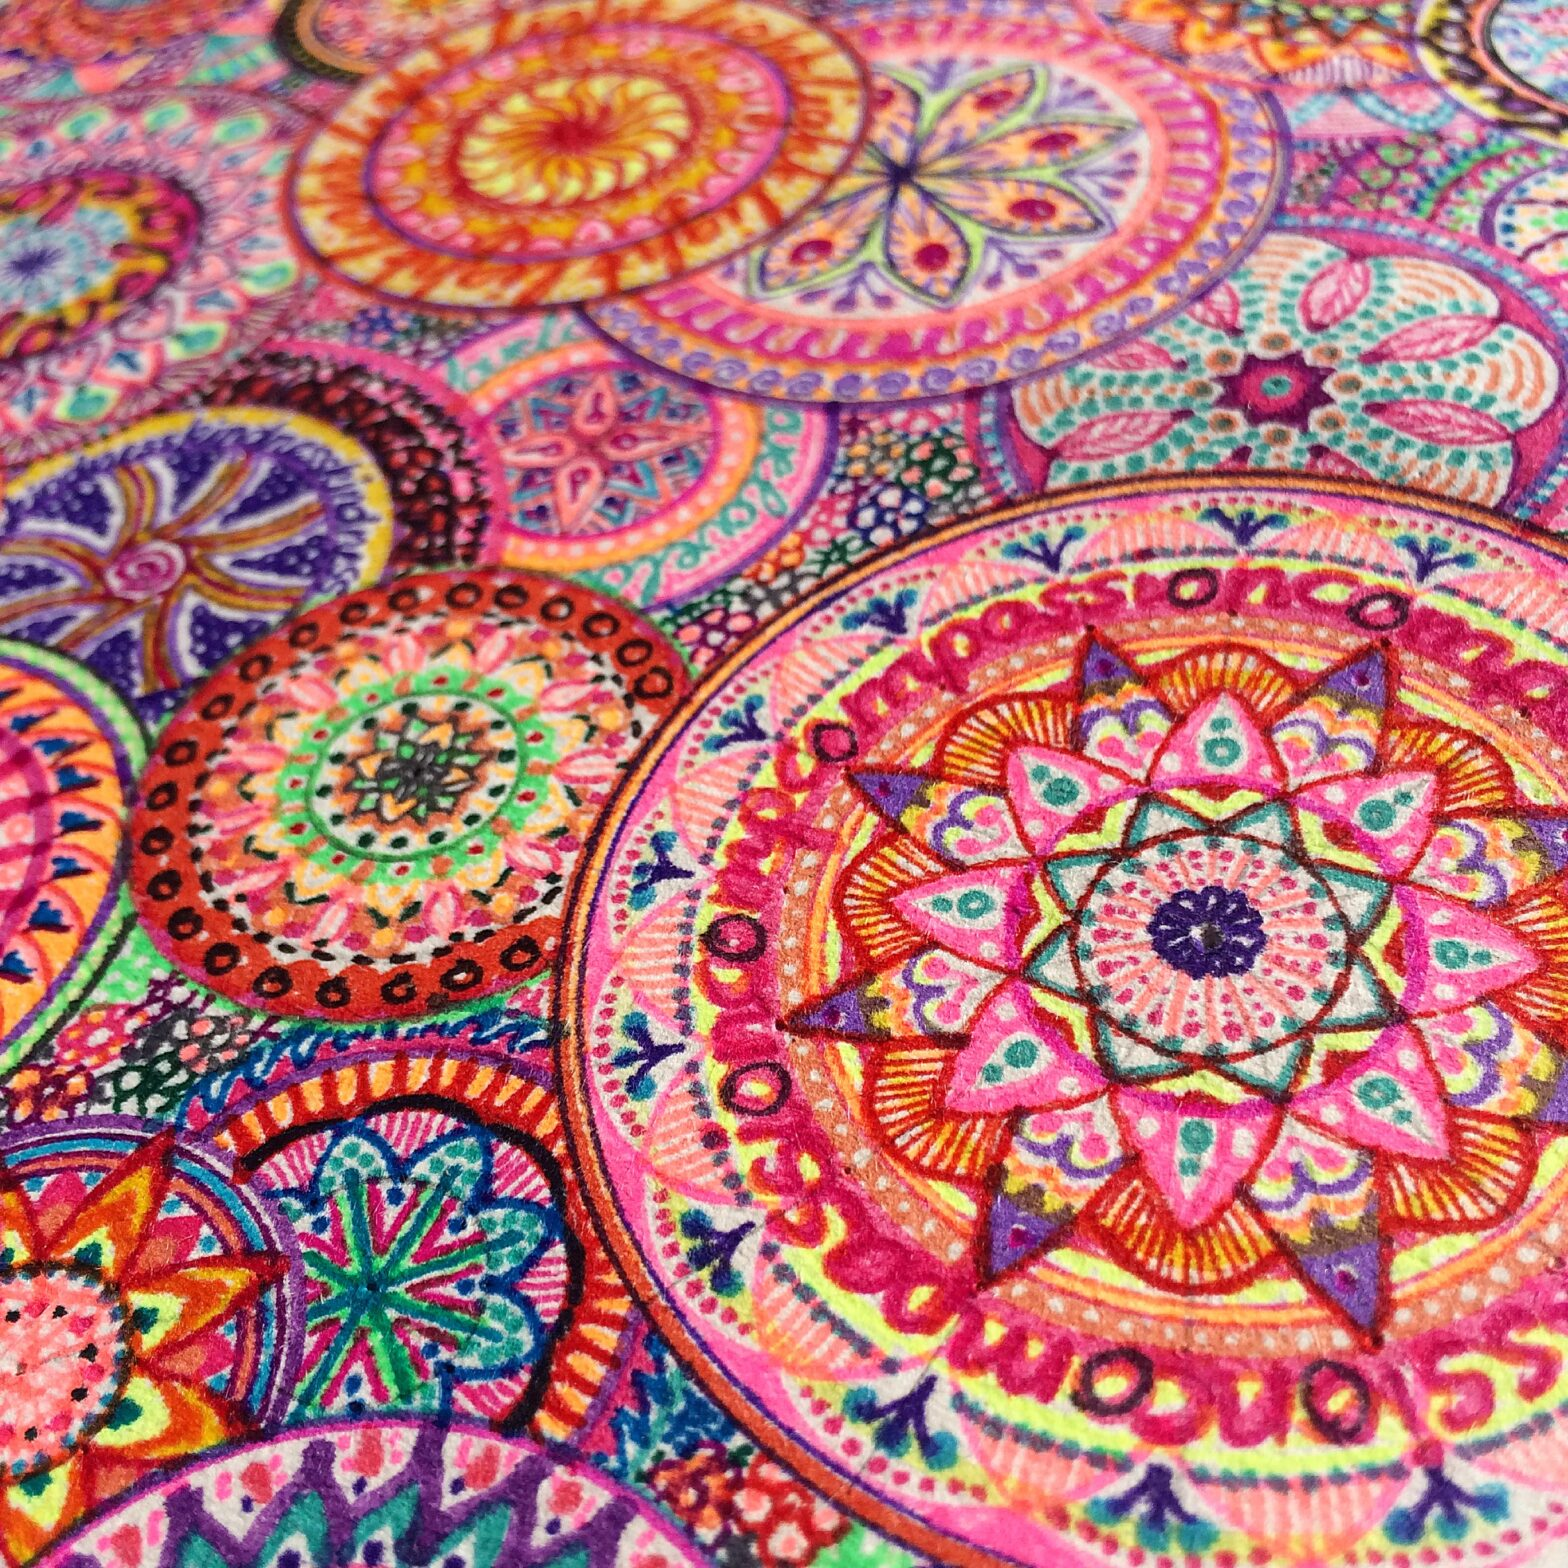 too many mandalas - detail picture of a colorful mandala drawing by herrberta